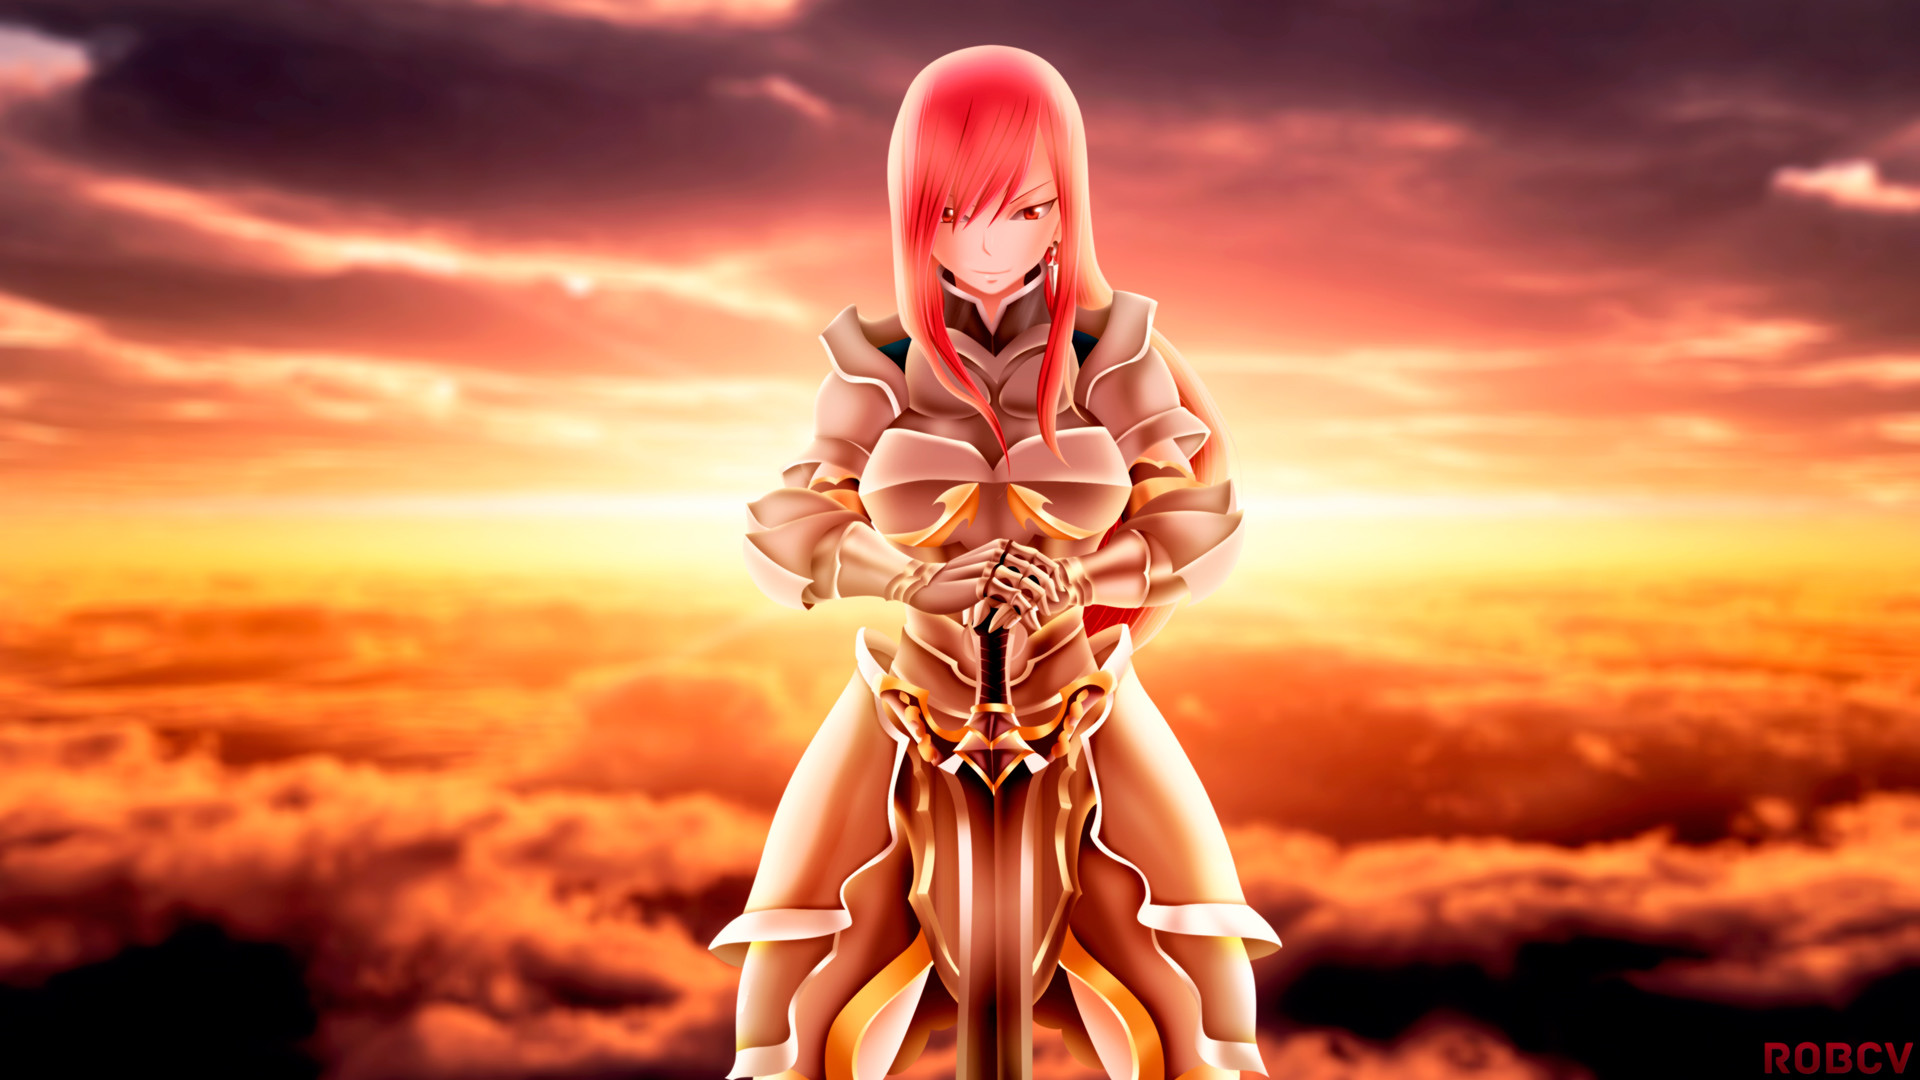 1920x1080 HD Free Erza Scarlet Backgrounds.